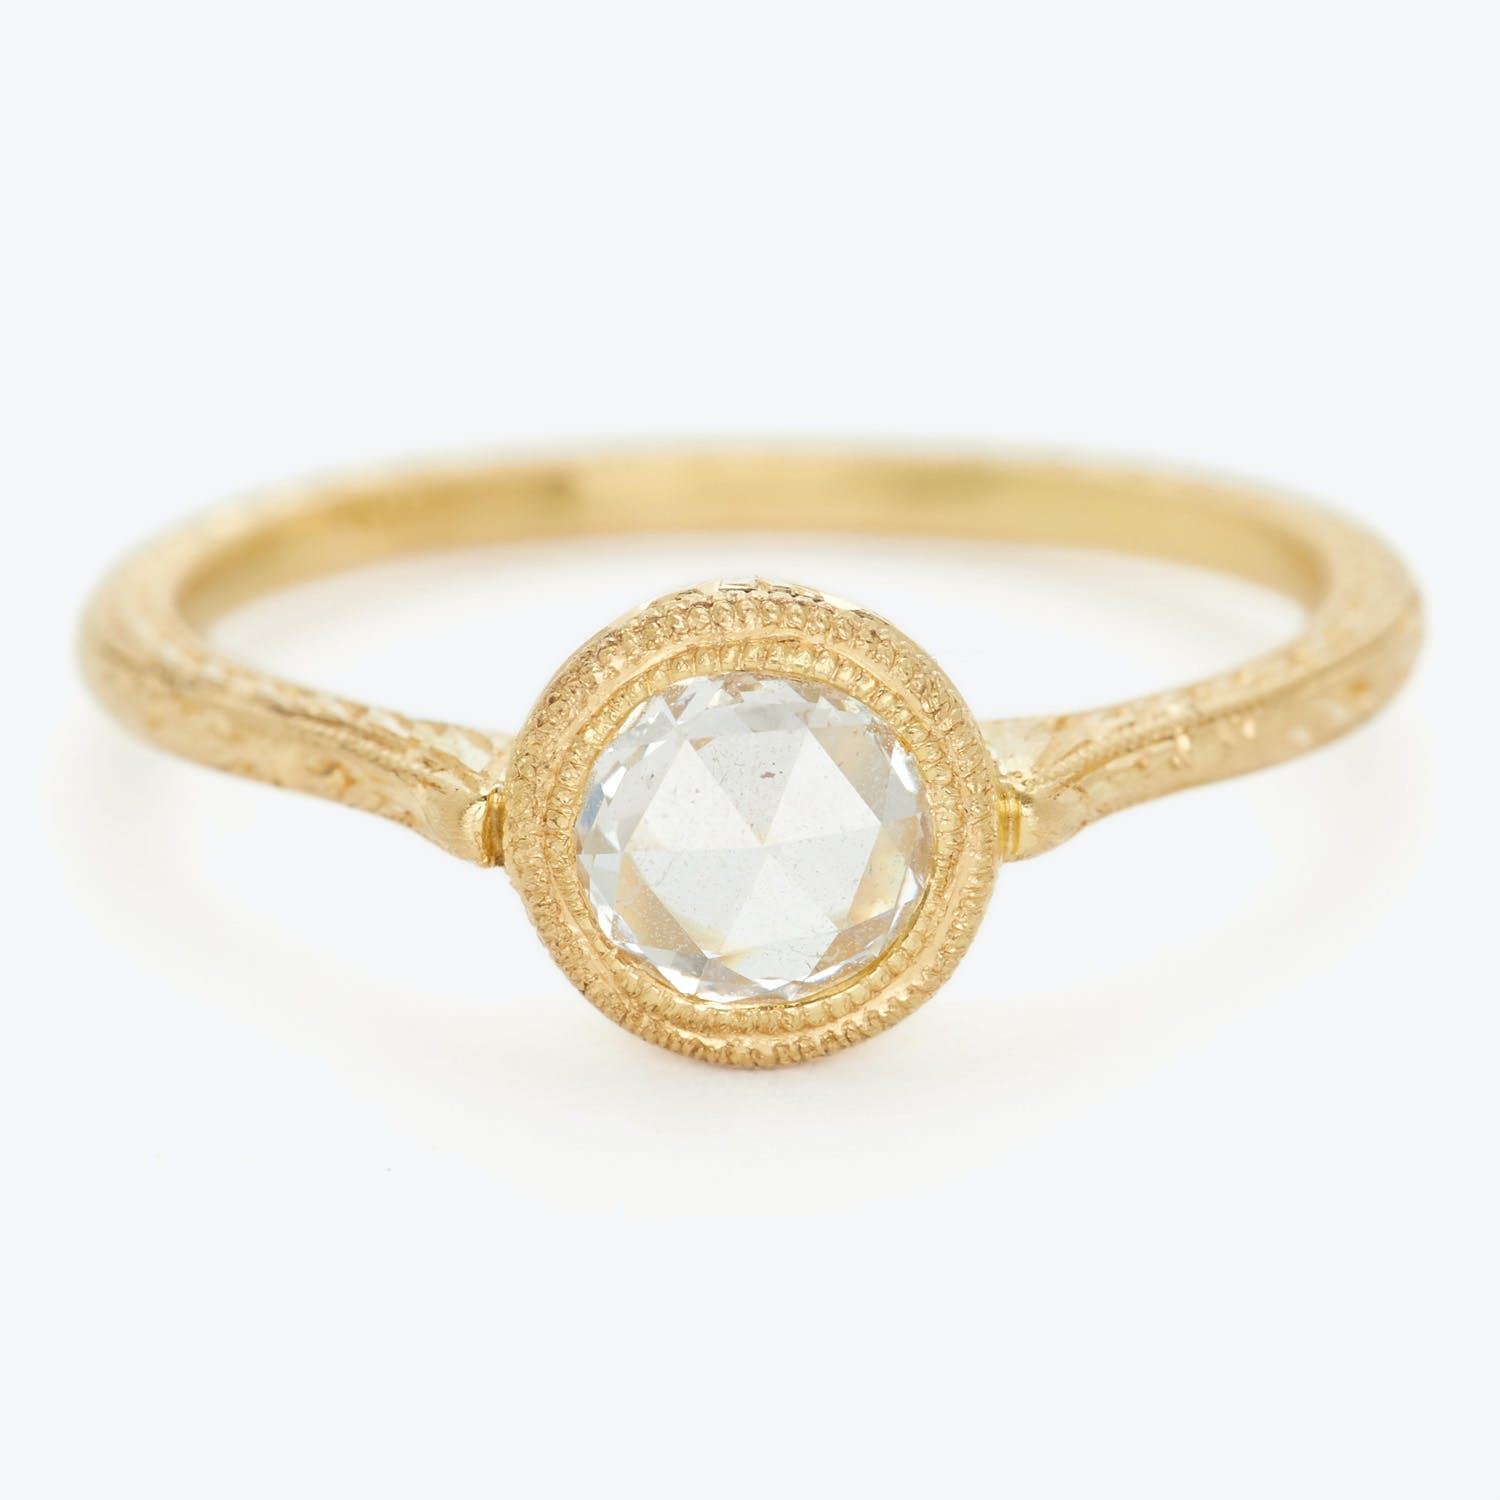 Product Image - Diana Mitchell One-of-a-kind Old European-cut Diamond Engraved Ring